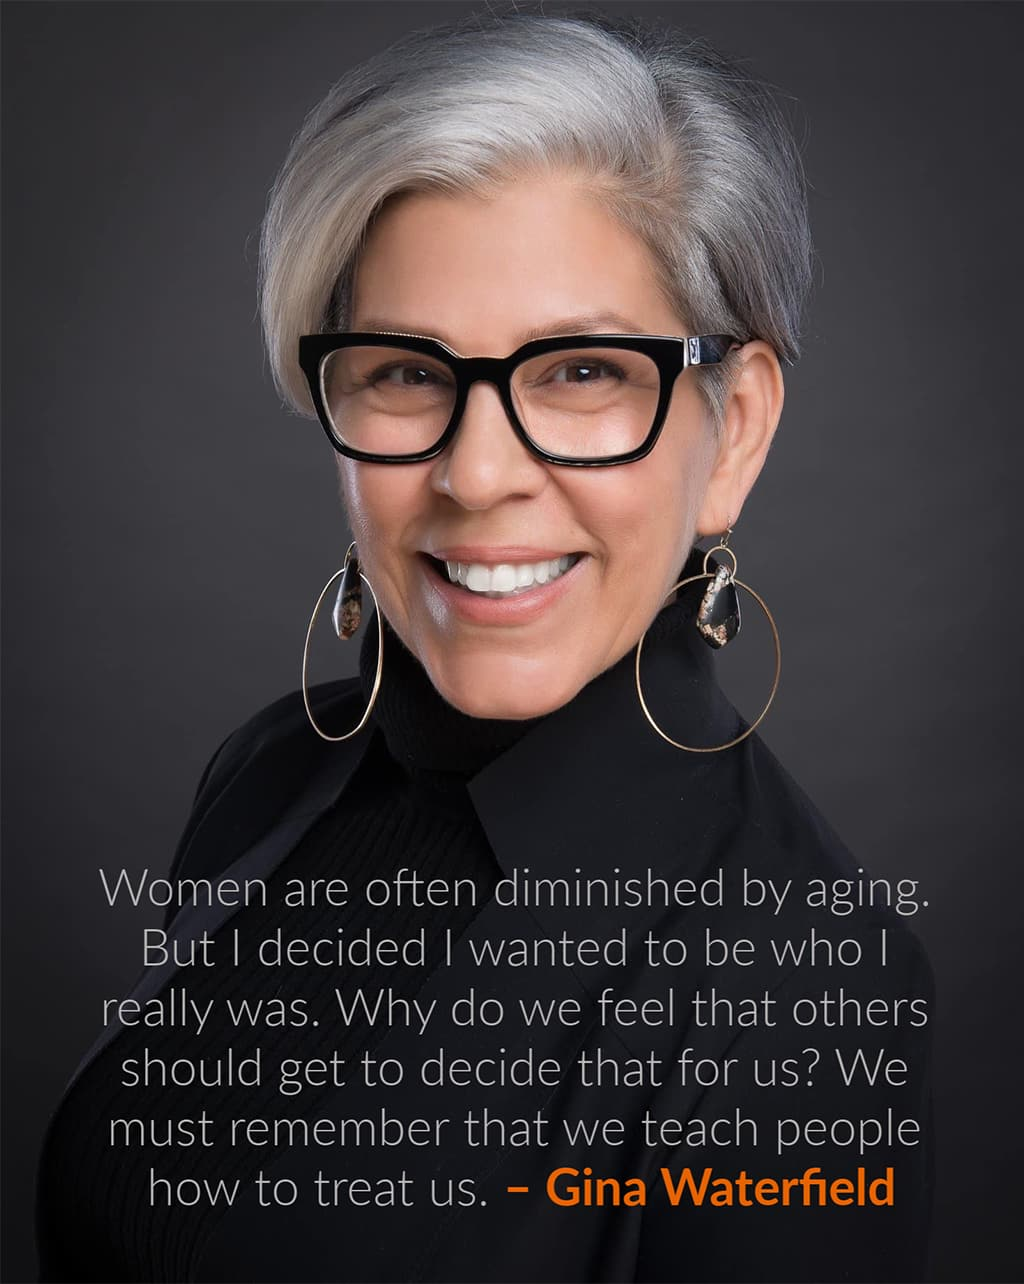 Picture Of Gina Waterfield With An Inspiring Quote About Being Empowered While Embracing Your Gray Hair